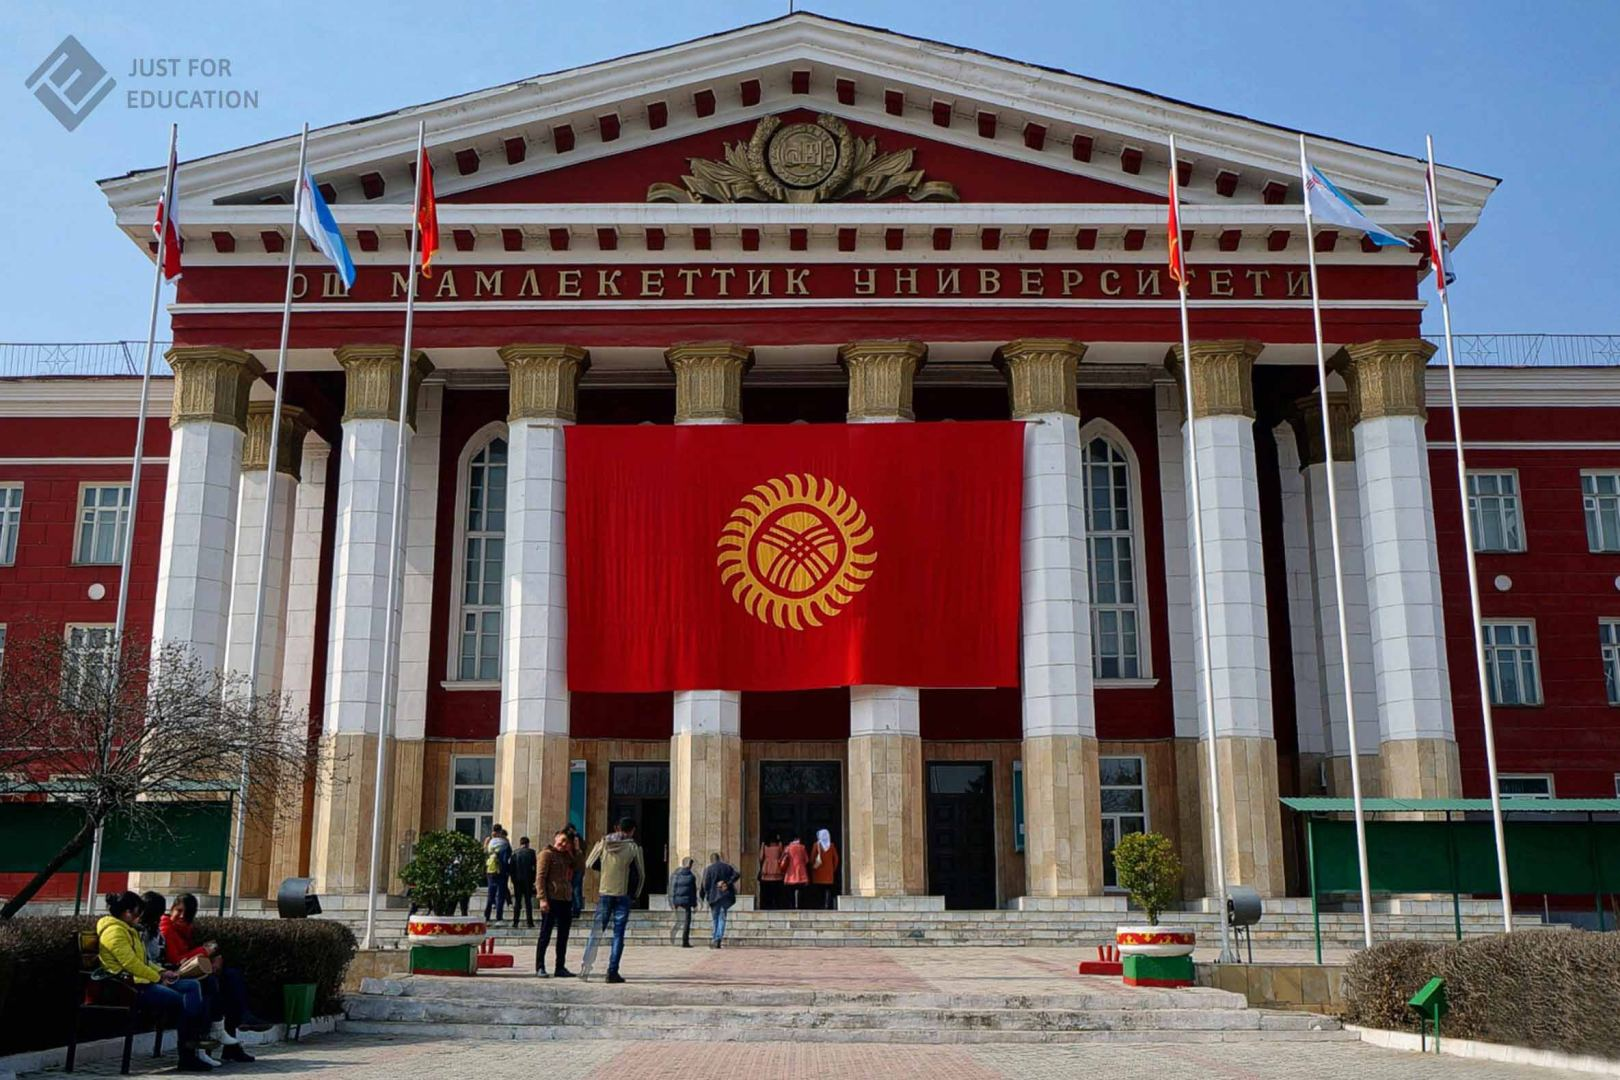 Kyrgyzstan's universities to start traditional education in mixed mode